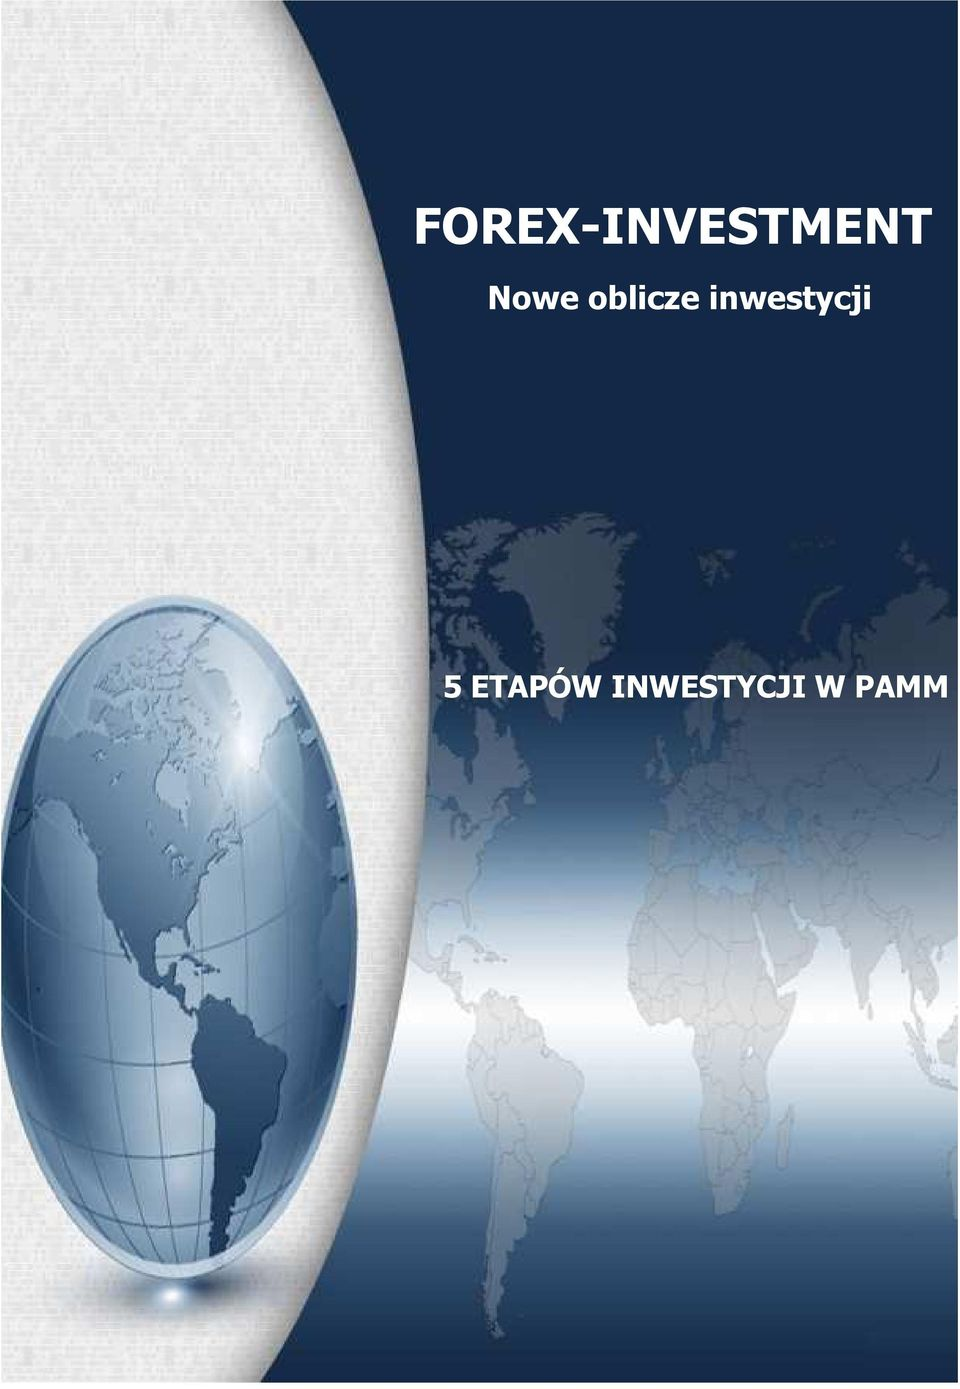 Forex as an investment